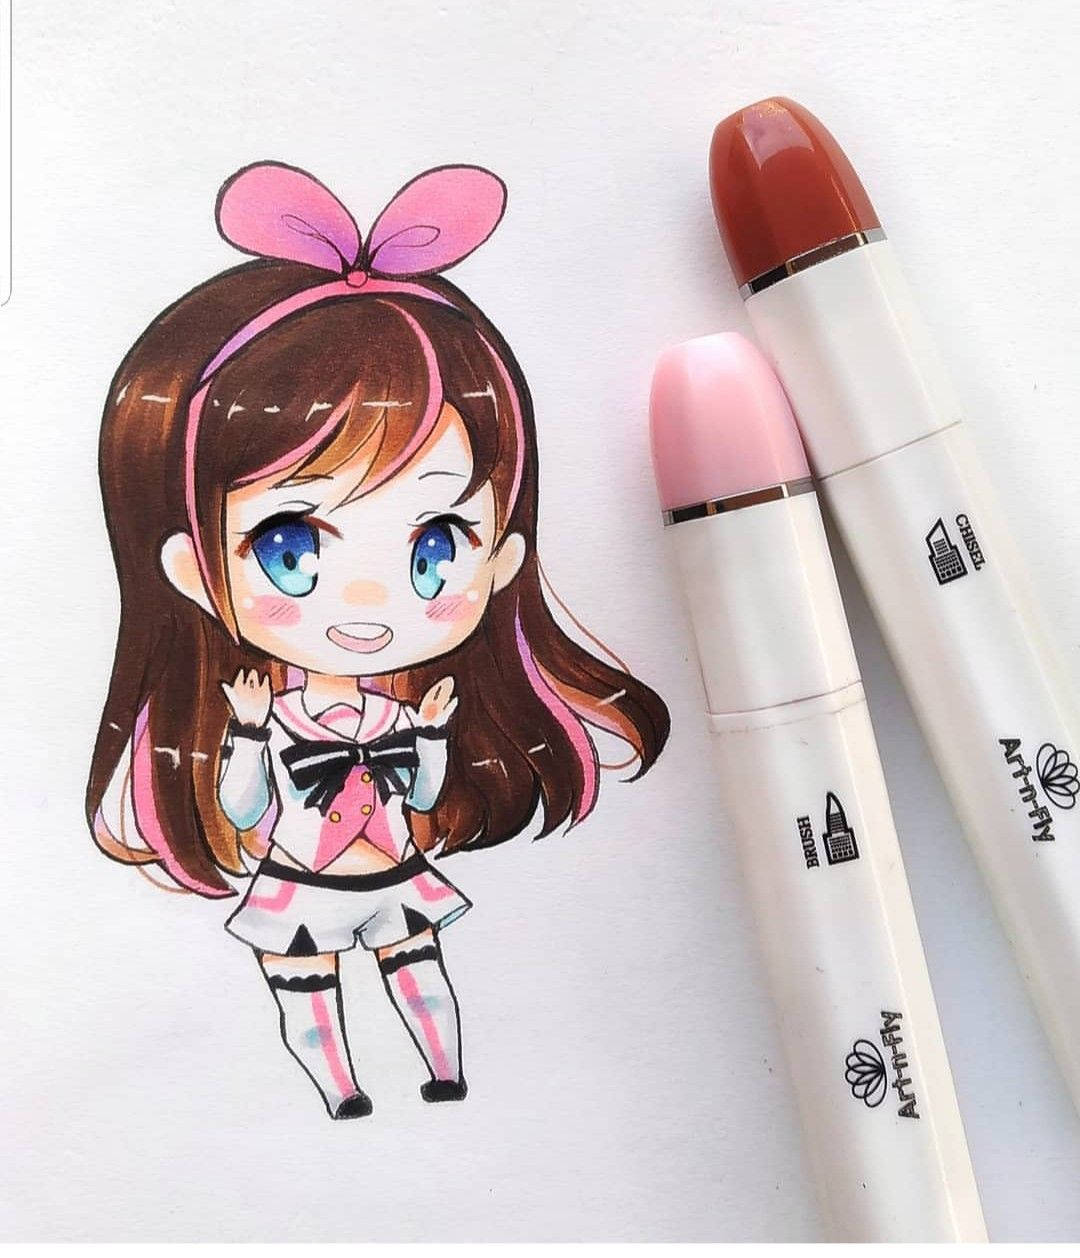 Pin By Art N Fly On Art N Fly Sketch Markers Art Marker Art Anime